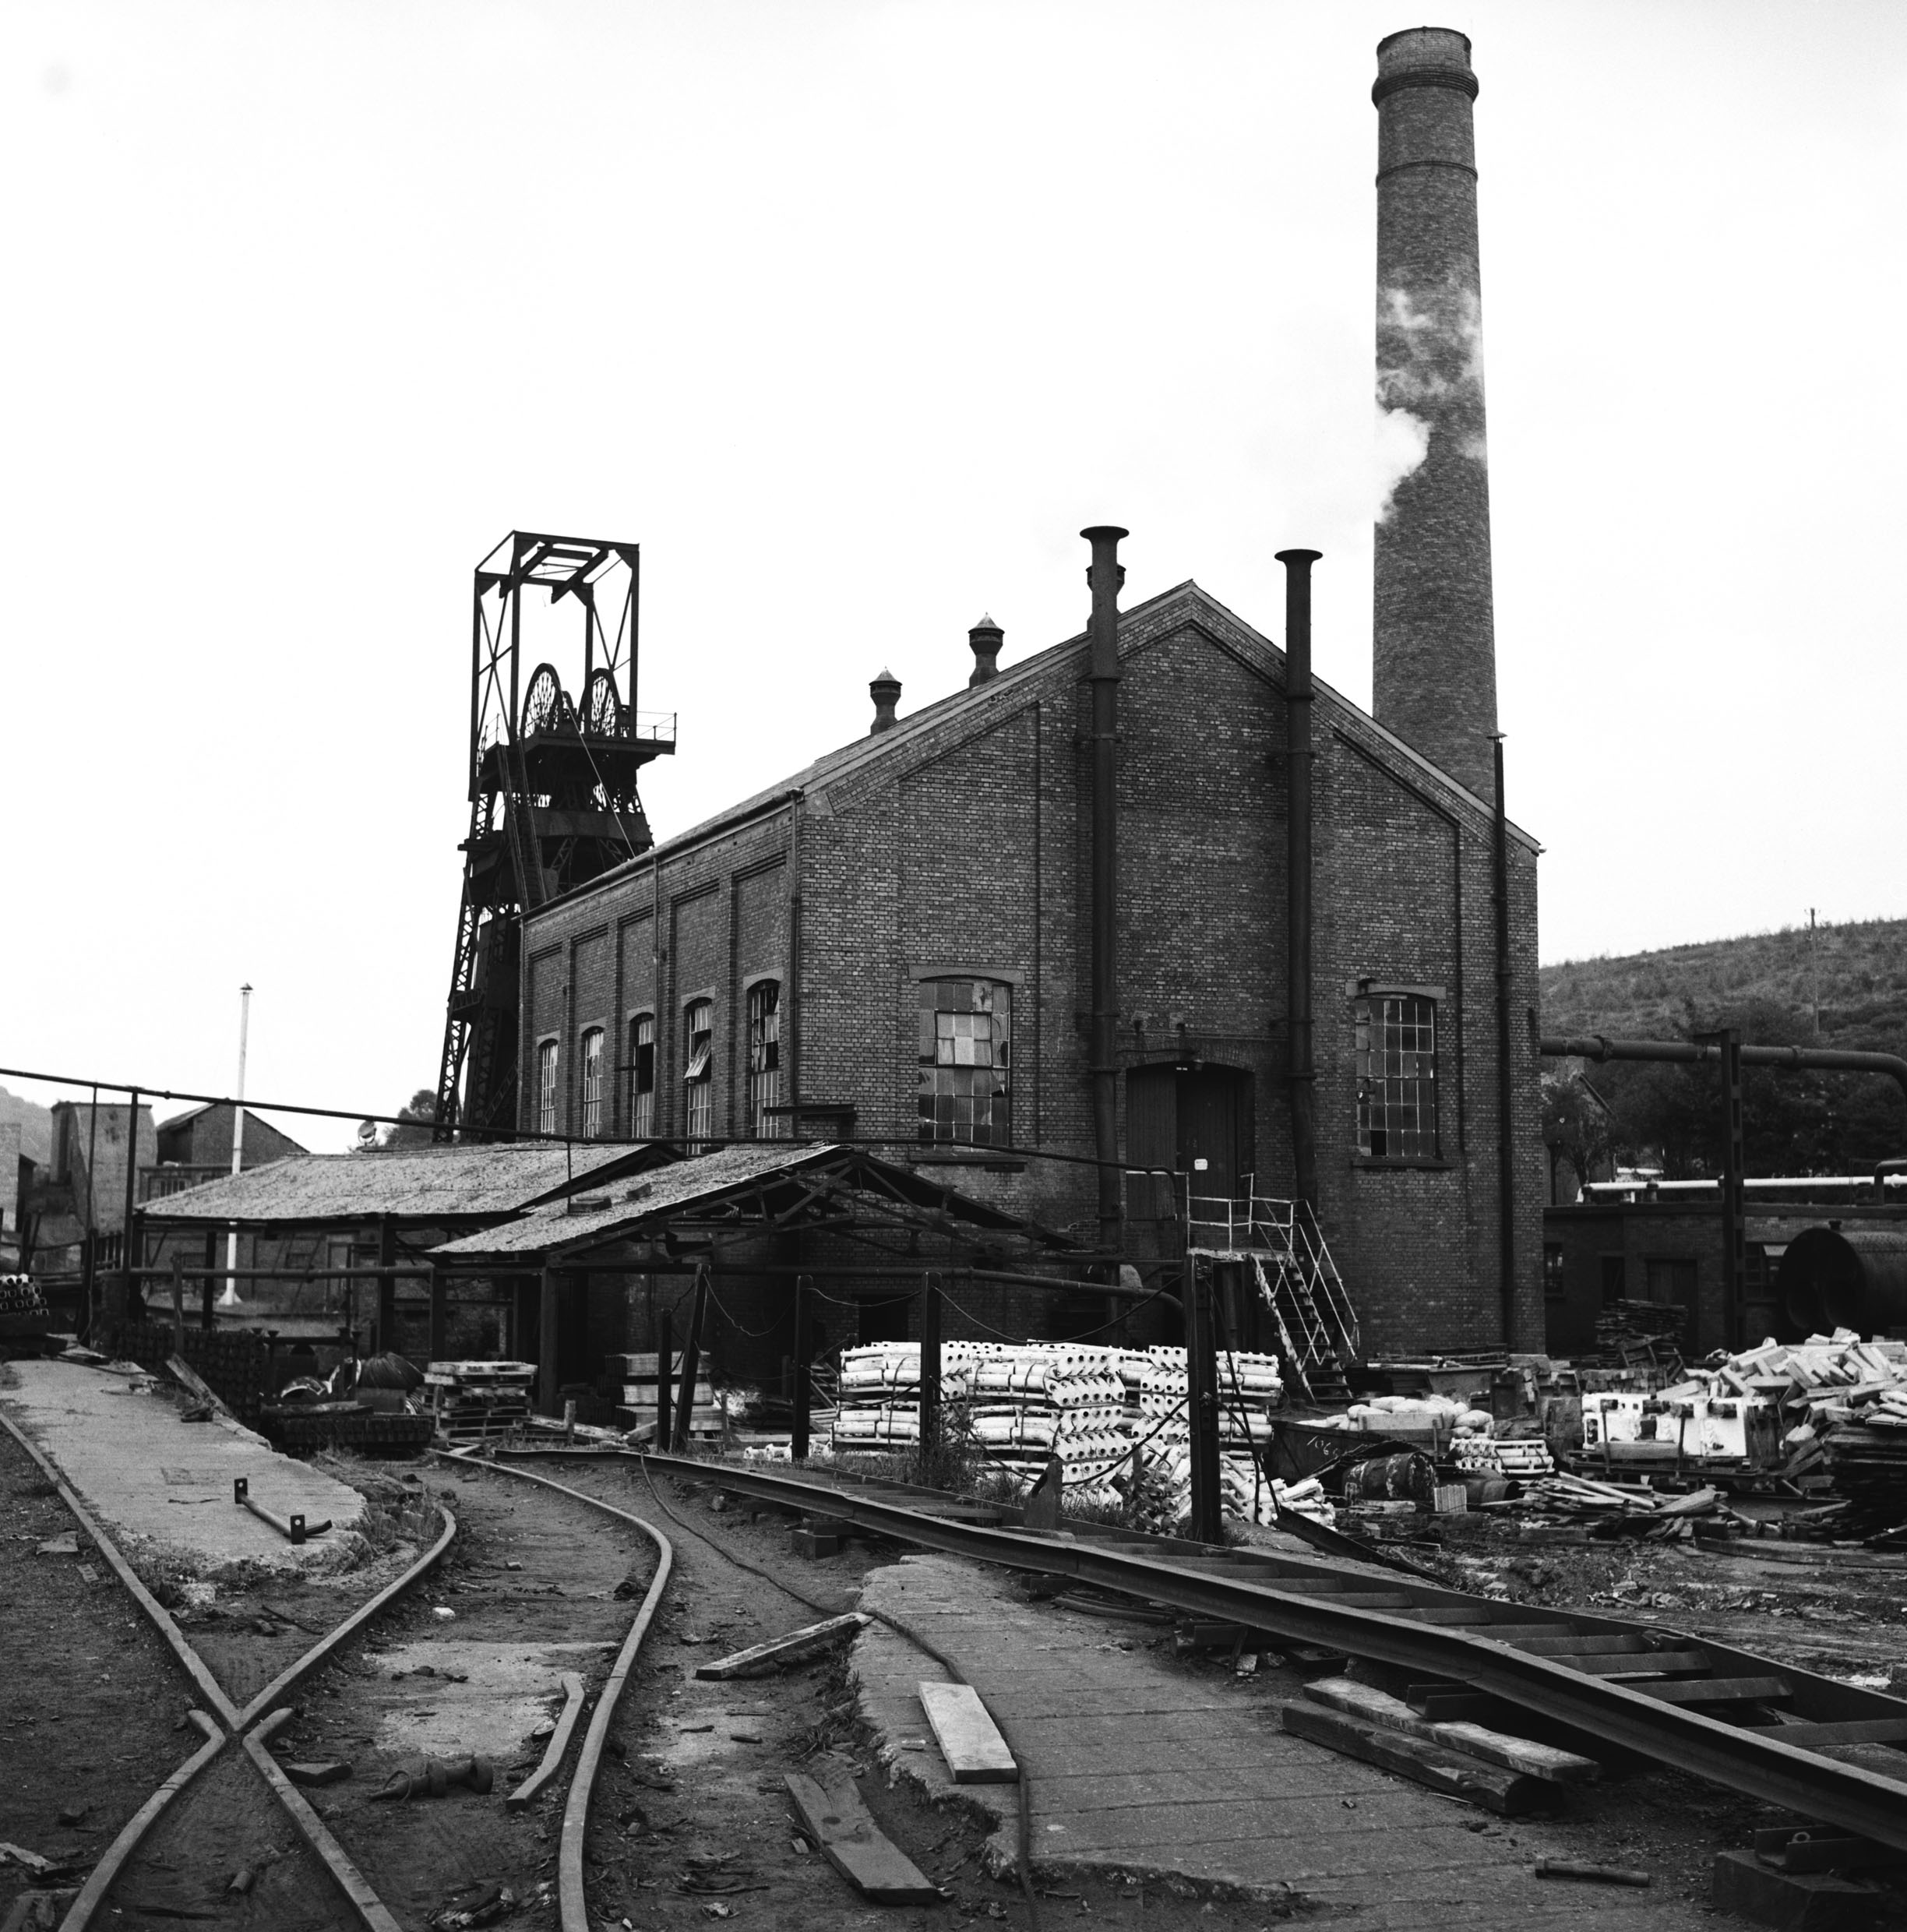 Cefn Coed Colliery engine house for the Markham engine on the upcast shaft 1973.